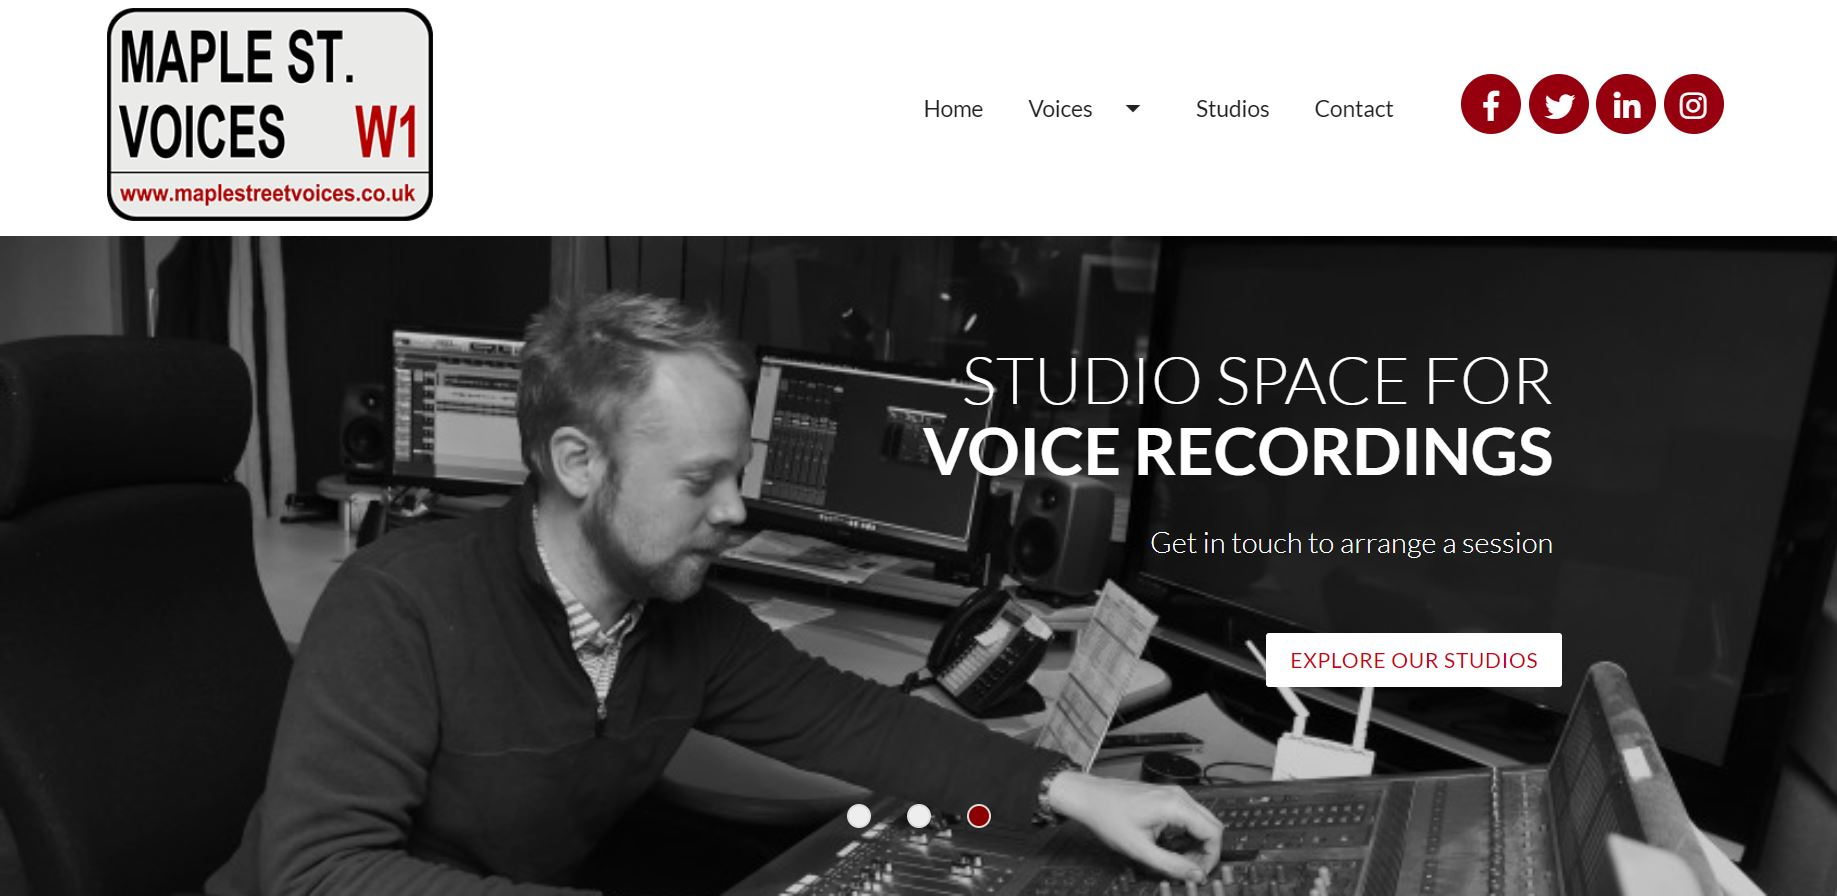 Studio sessions come with free, incredibly handsome audio engineers